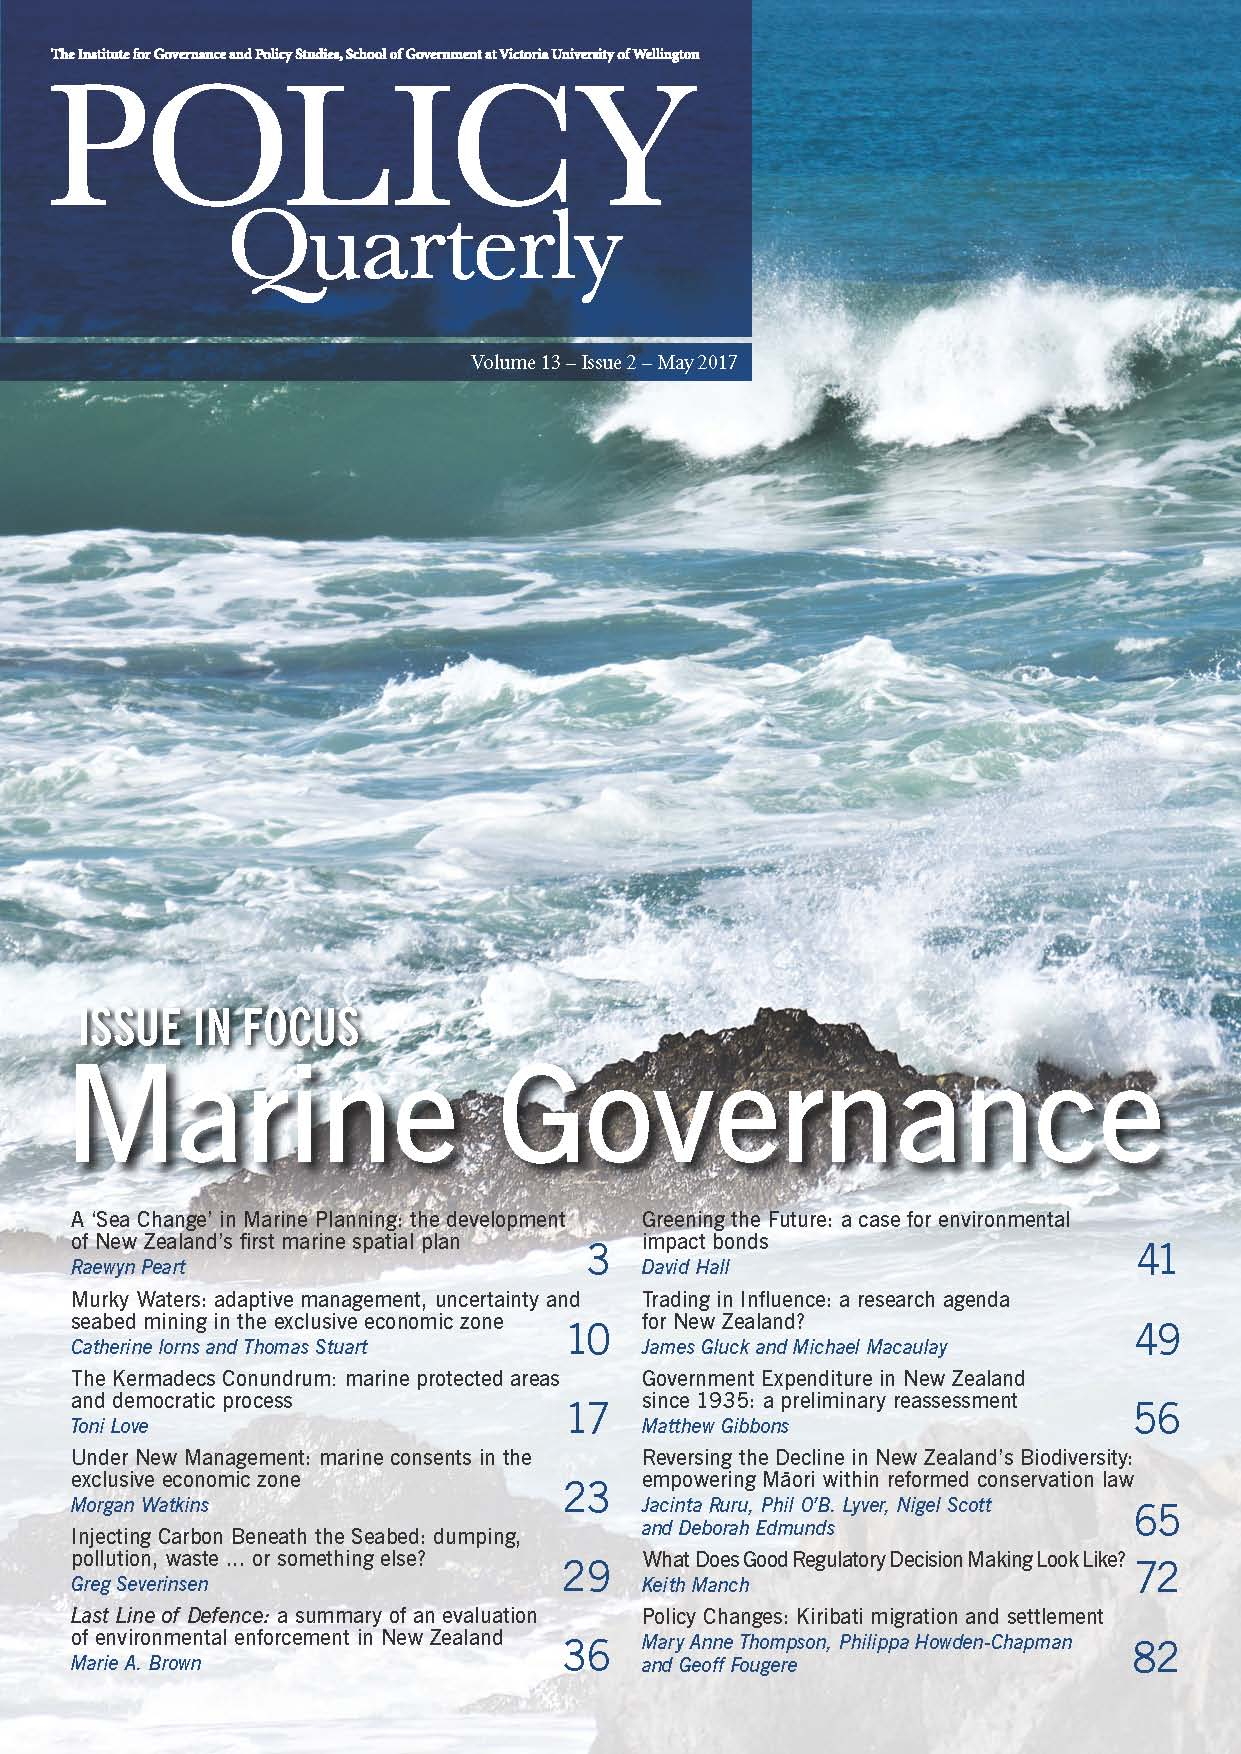 Policy Quarterly volume 13 issue 2 2017